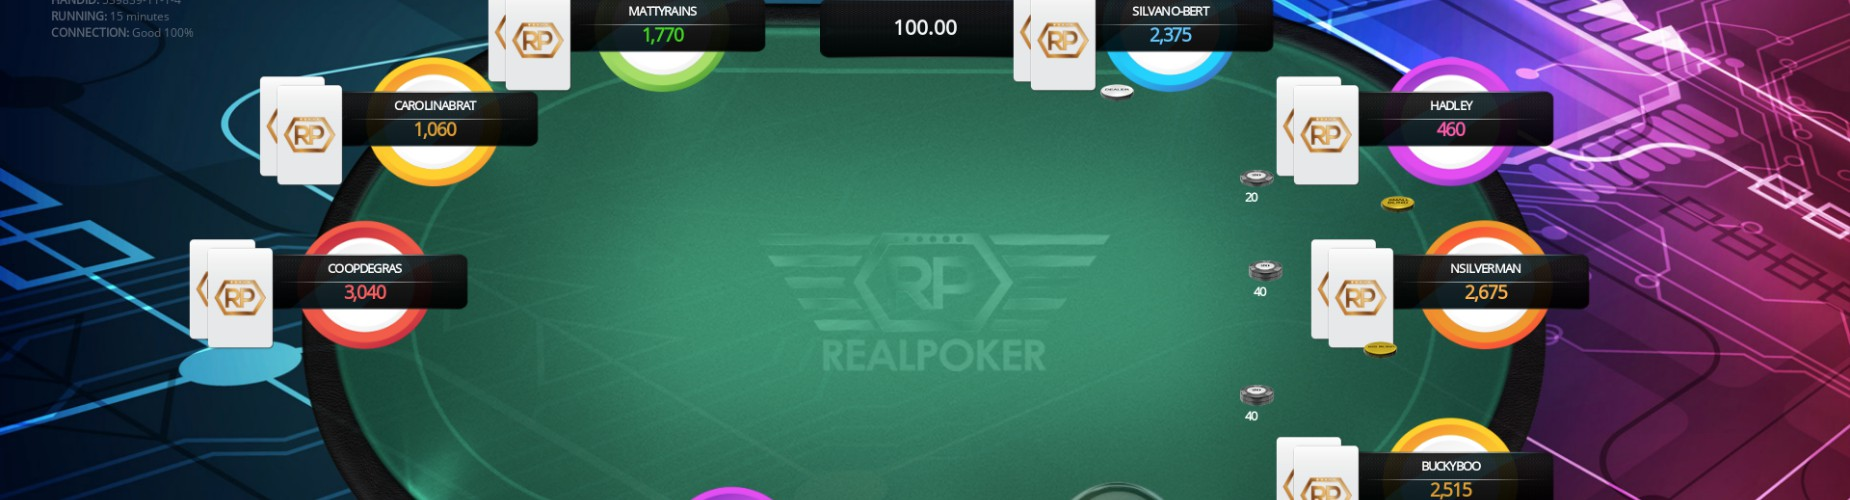 Online Poker Bitcoin Account